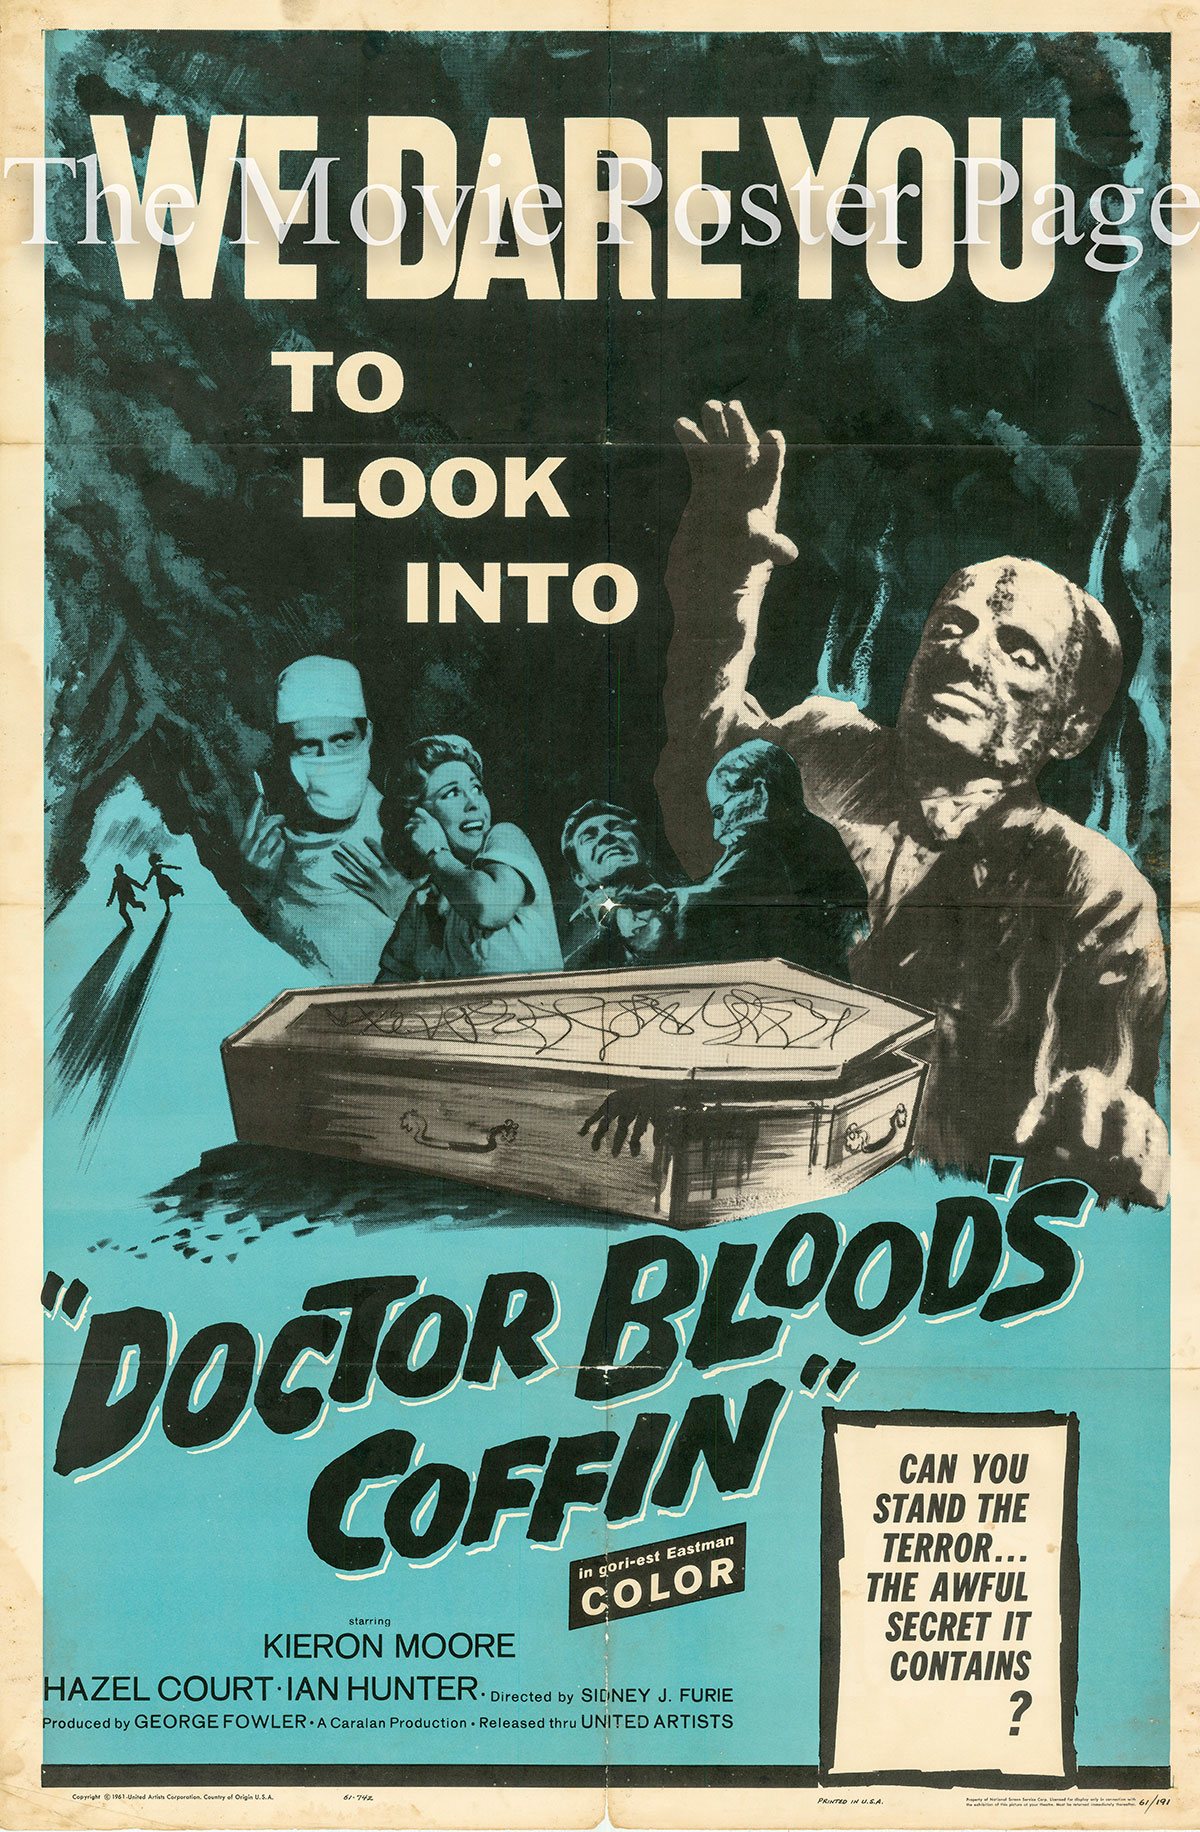 Pictured is a US one-sheet promotional poster for the 1961 Sidney J. Furie film Dr. Blood's Coffin starring Kieron Moore.